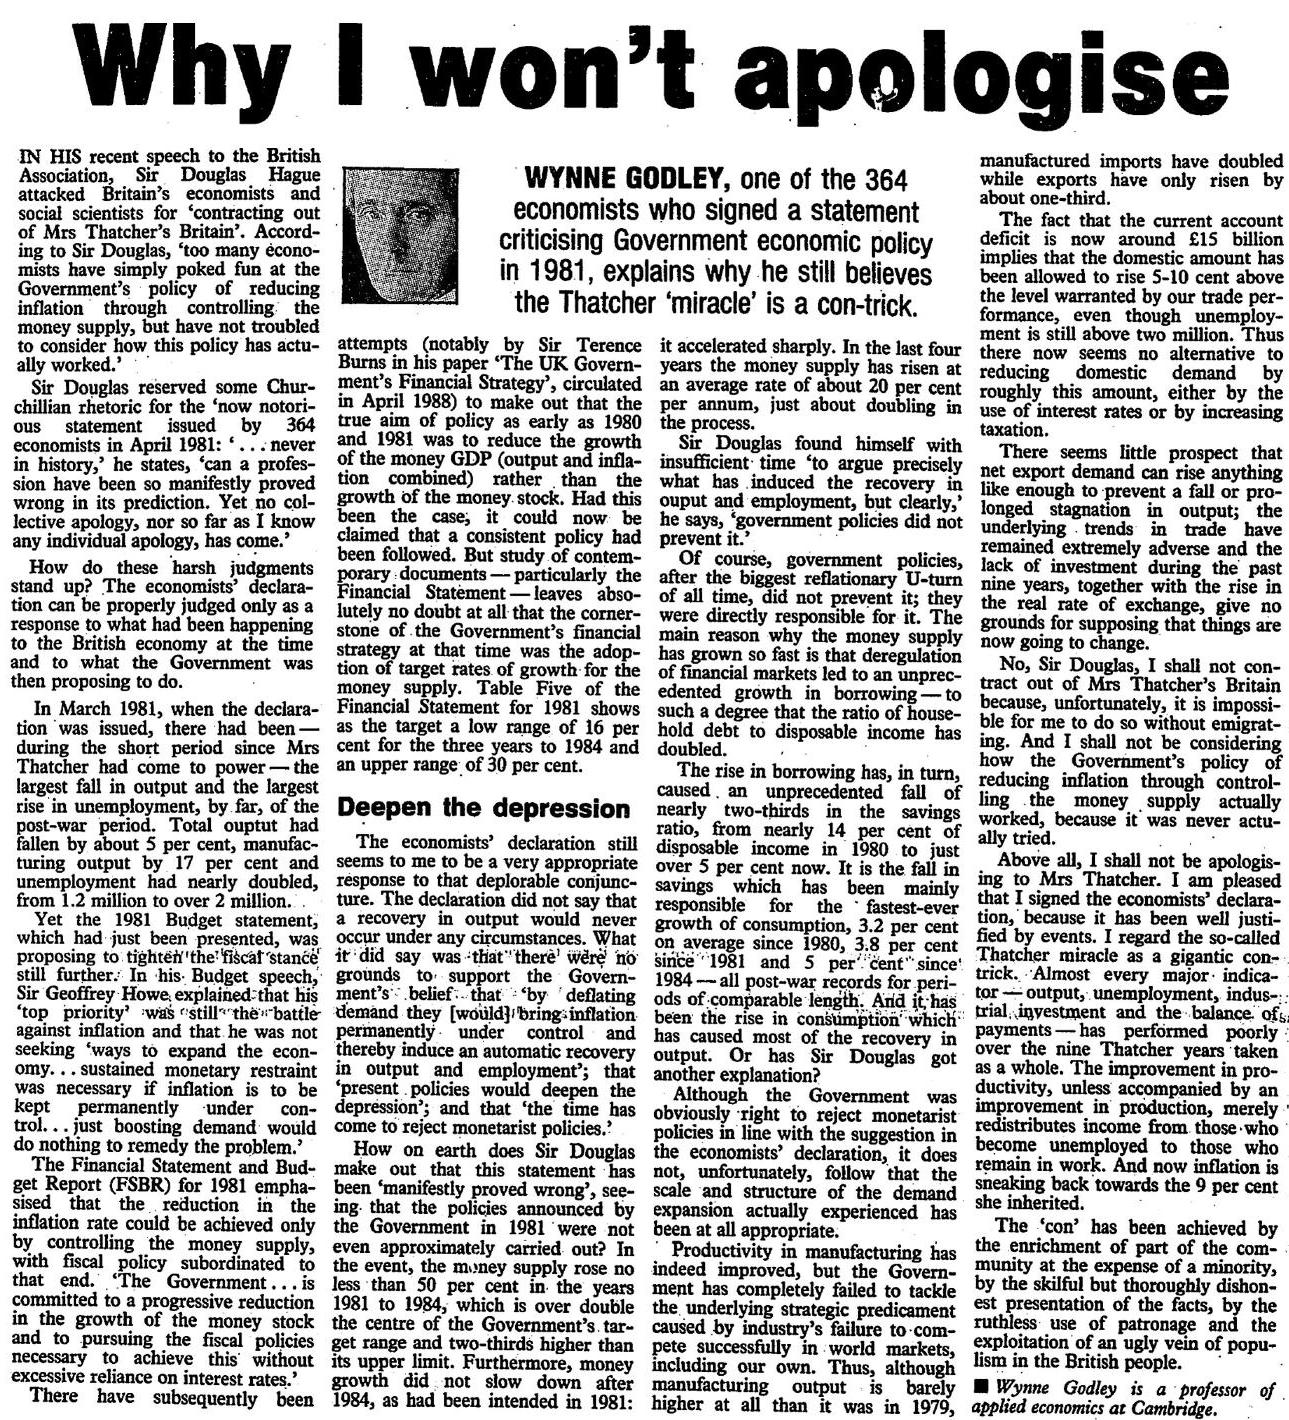 Wynne Godley - Why I Won't Apologize